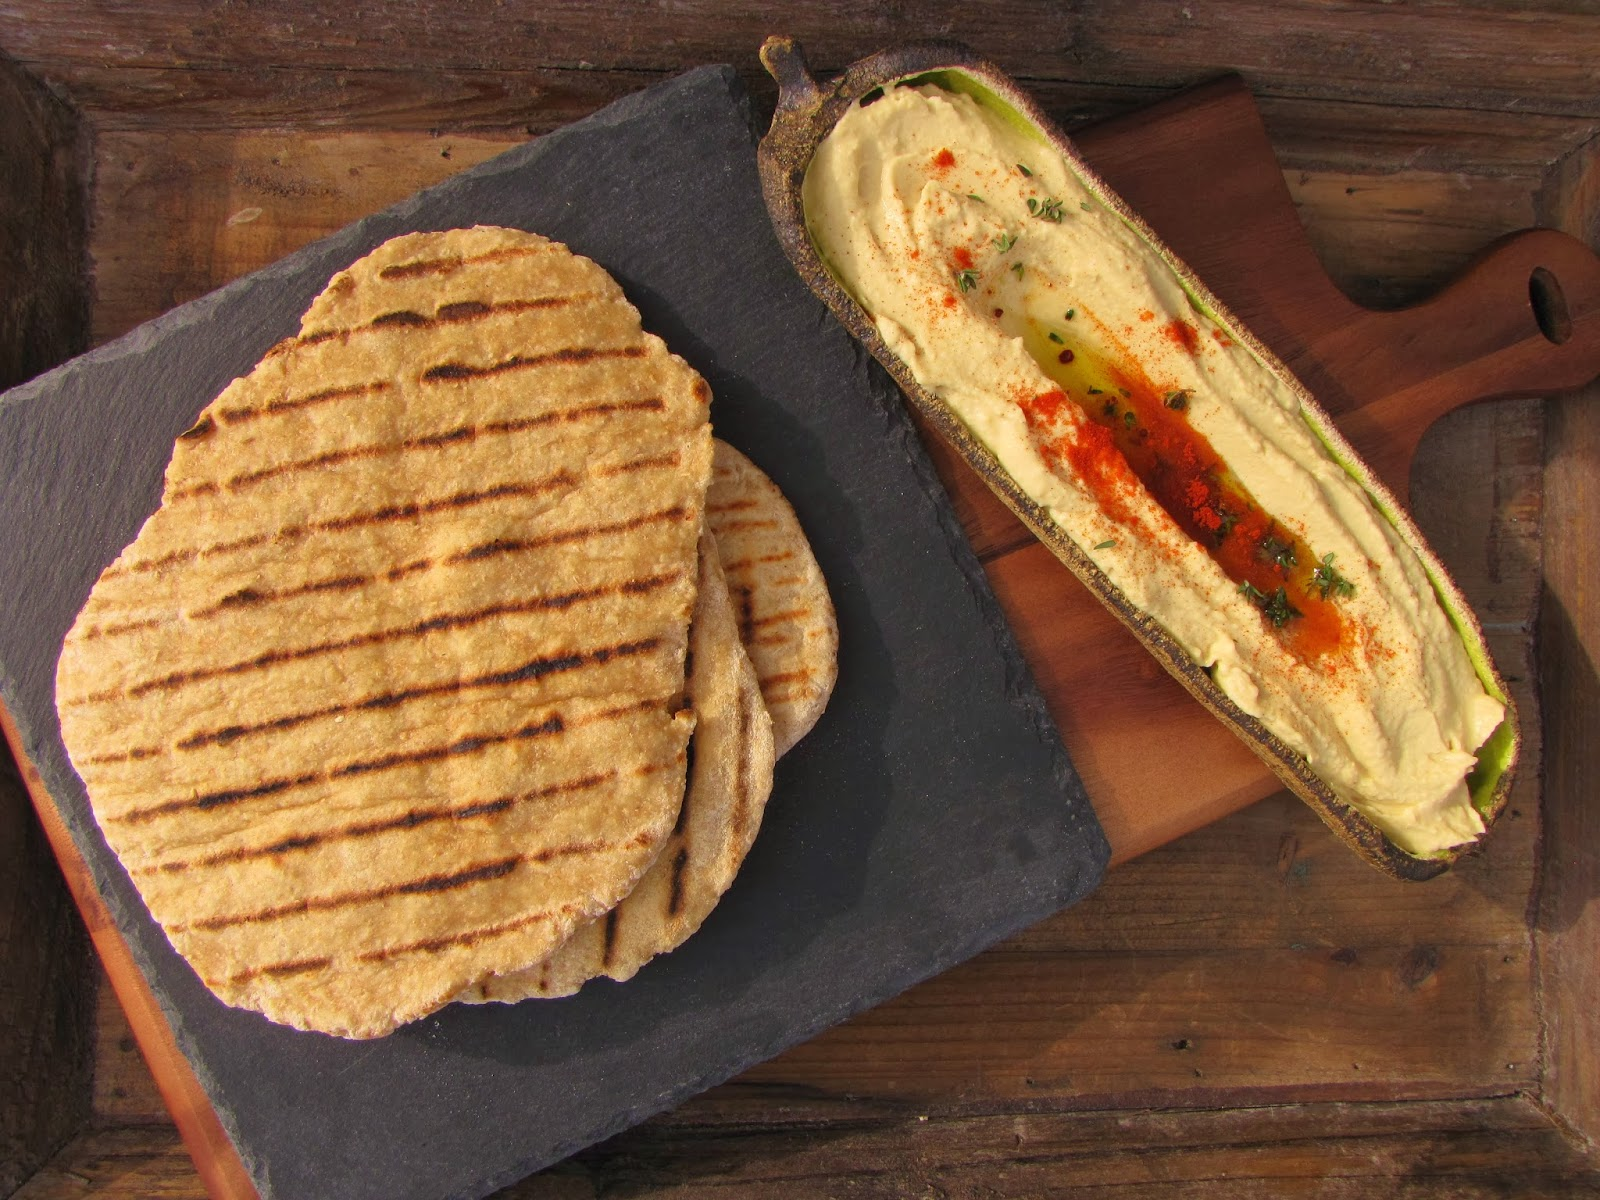 Travel pennies the memory dish easy flatbreads inspired by jordan each week ill feature a recipe inspired from my travels from far flung locations to a wee local cafe forumfinder Choice Image